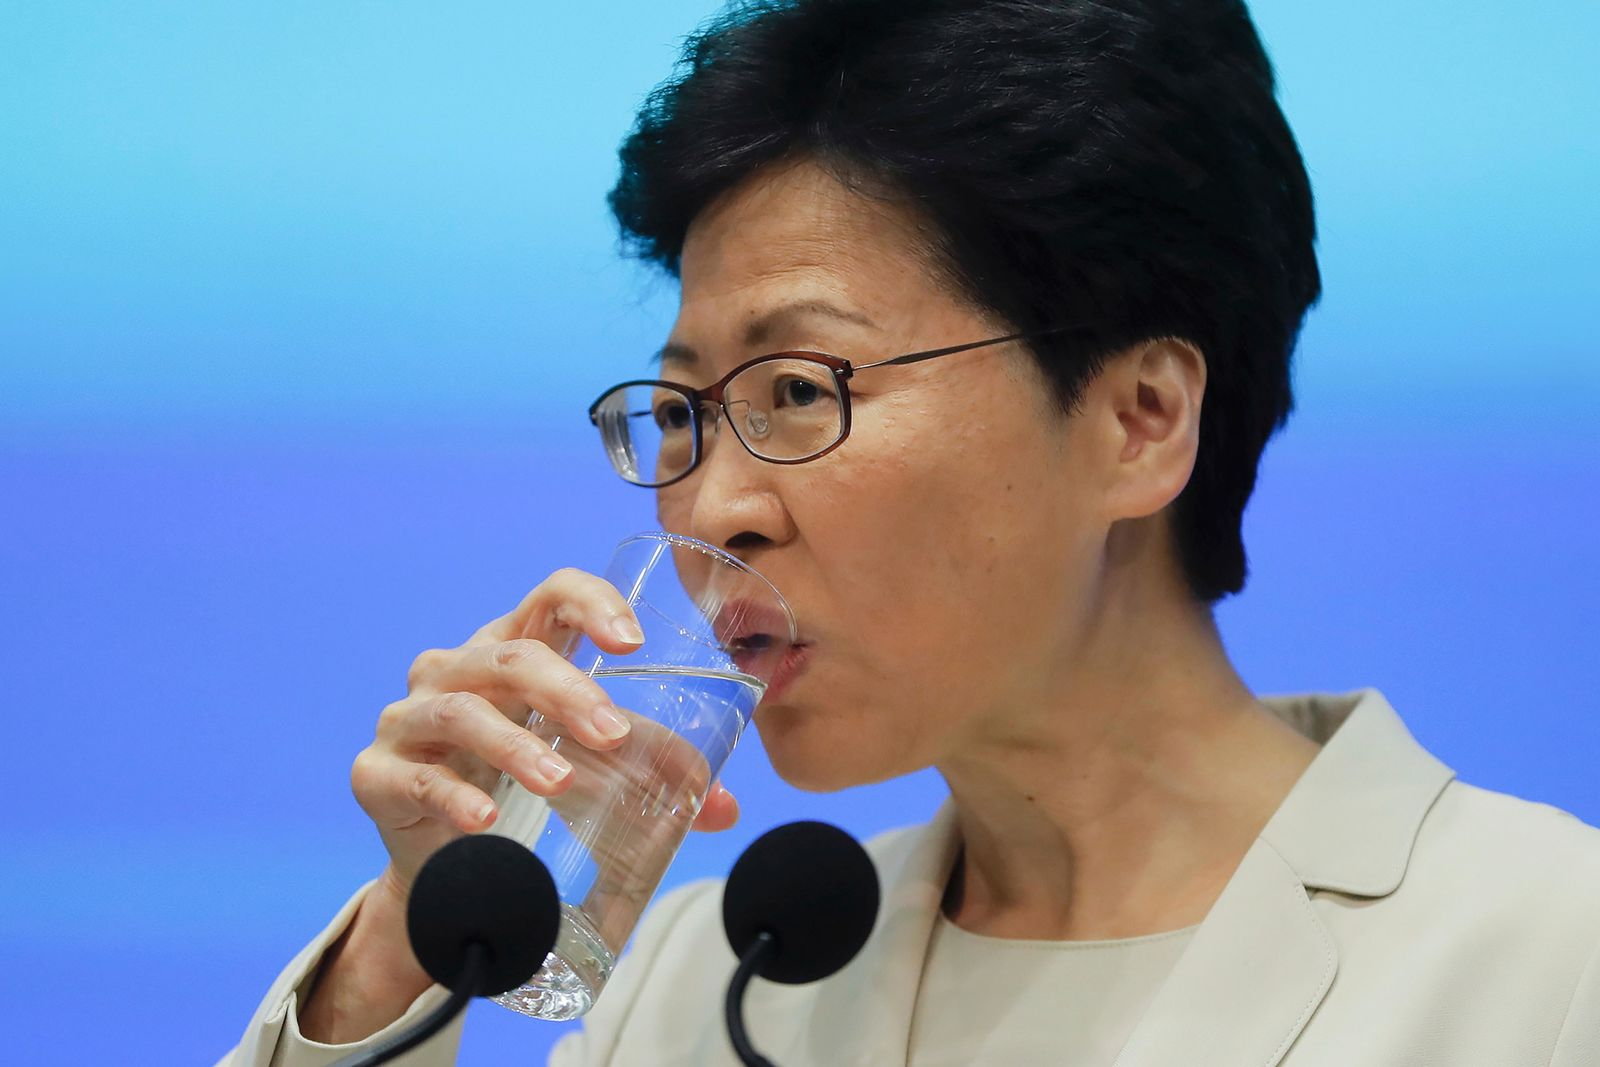 Hong Kong Chief Executive Carrie Lam drinks during a press conference at the Legislative Council in Hong Kong, Tuesday, June 18, 2019. Lam apologized Tuesday for an unpopular extradition bill that drew massive protests and indicated that it will not be revived during the current legislative session. (AP Photo/Kin Cheung)